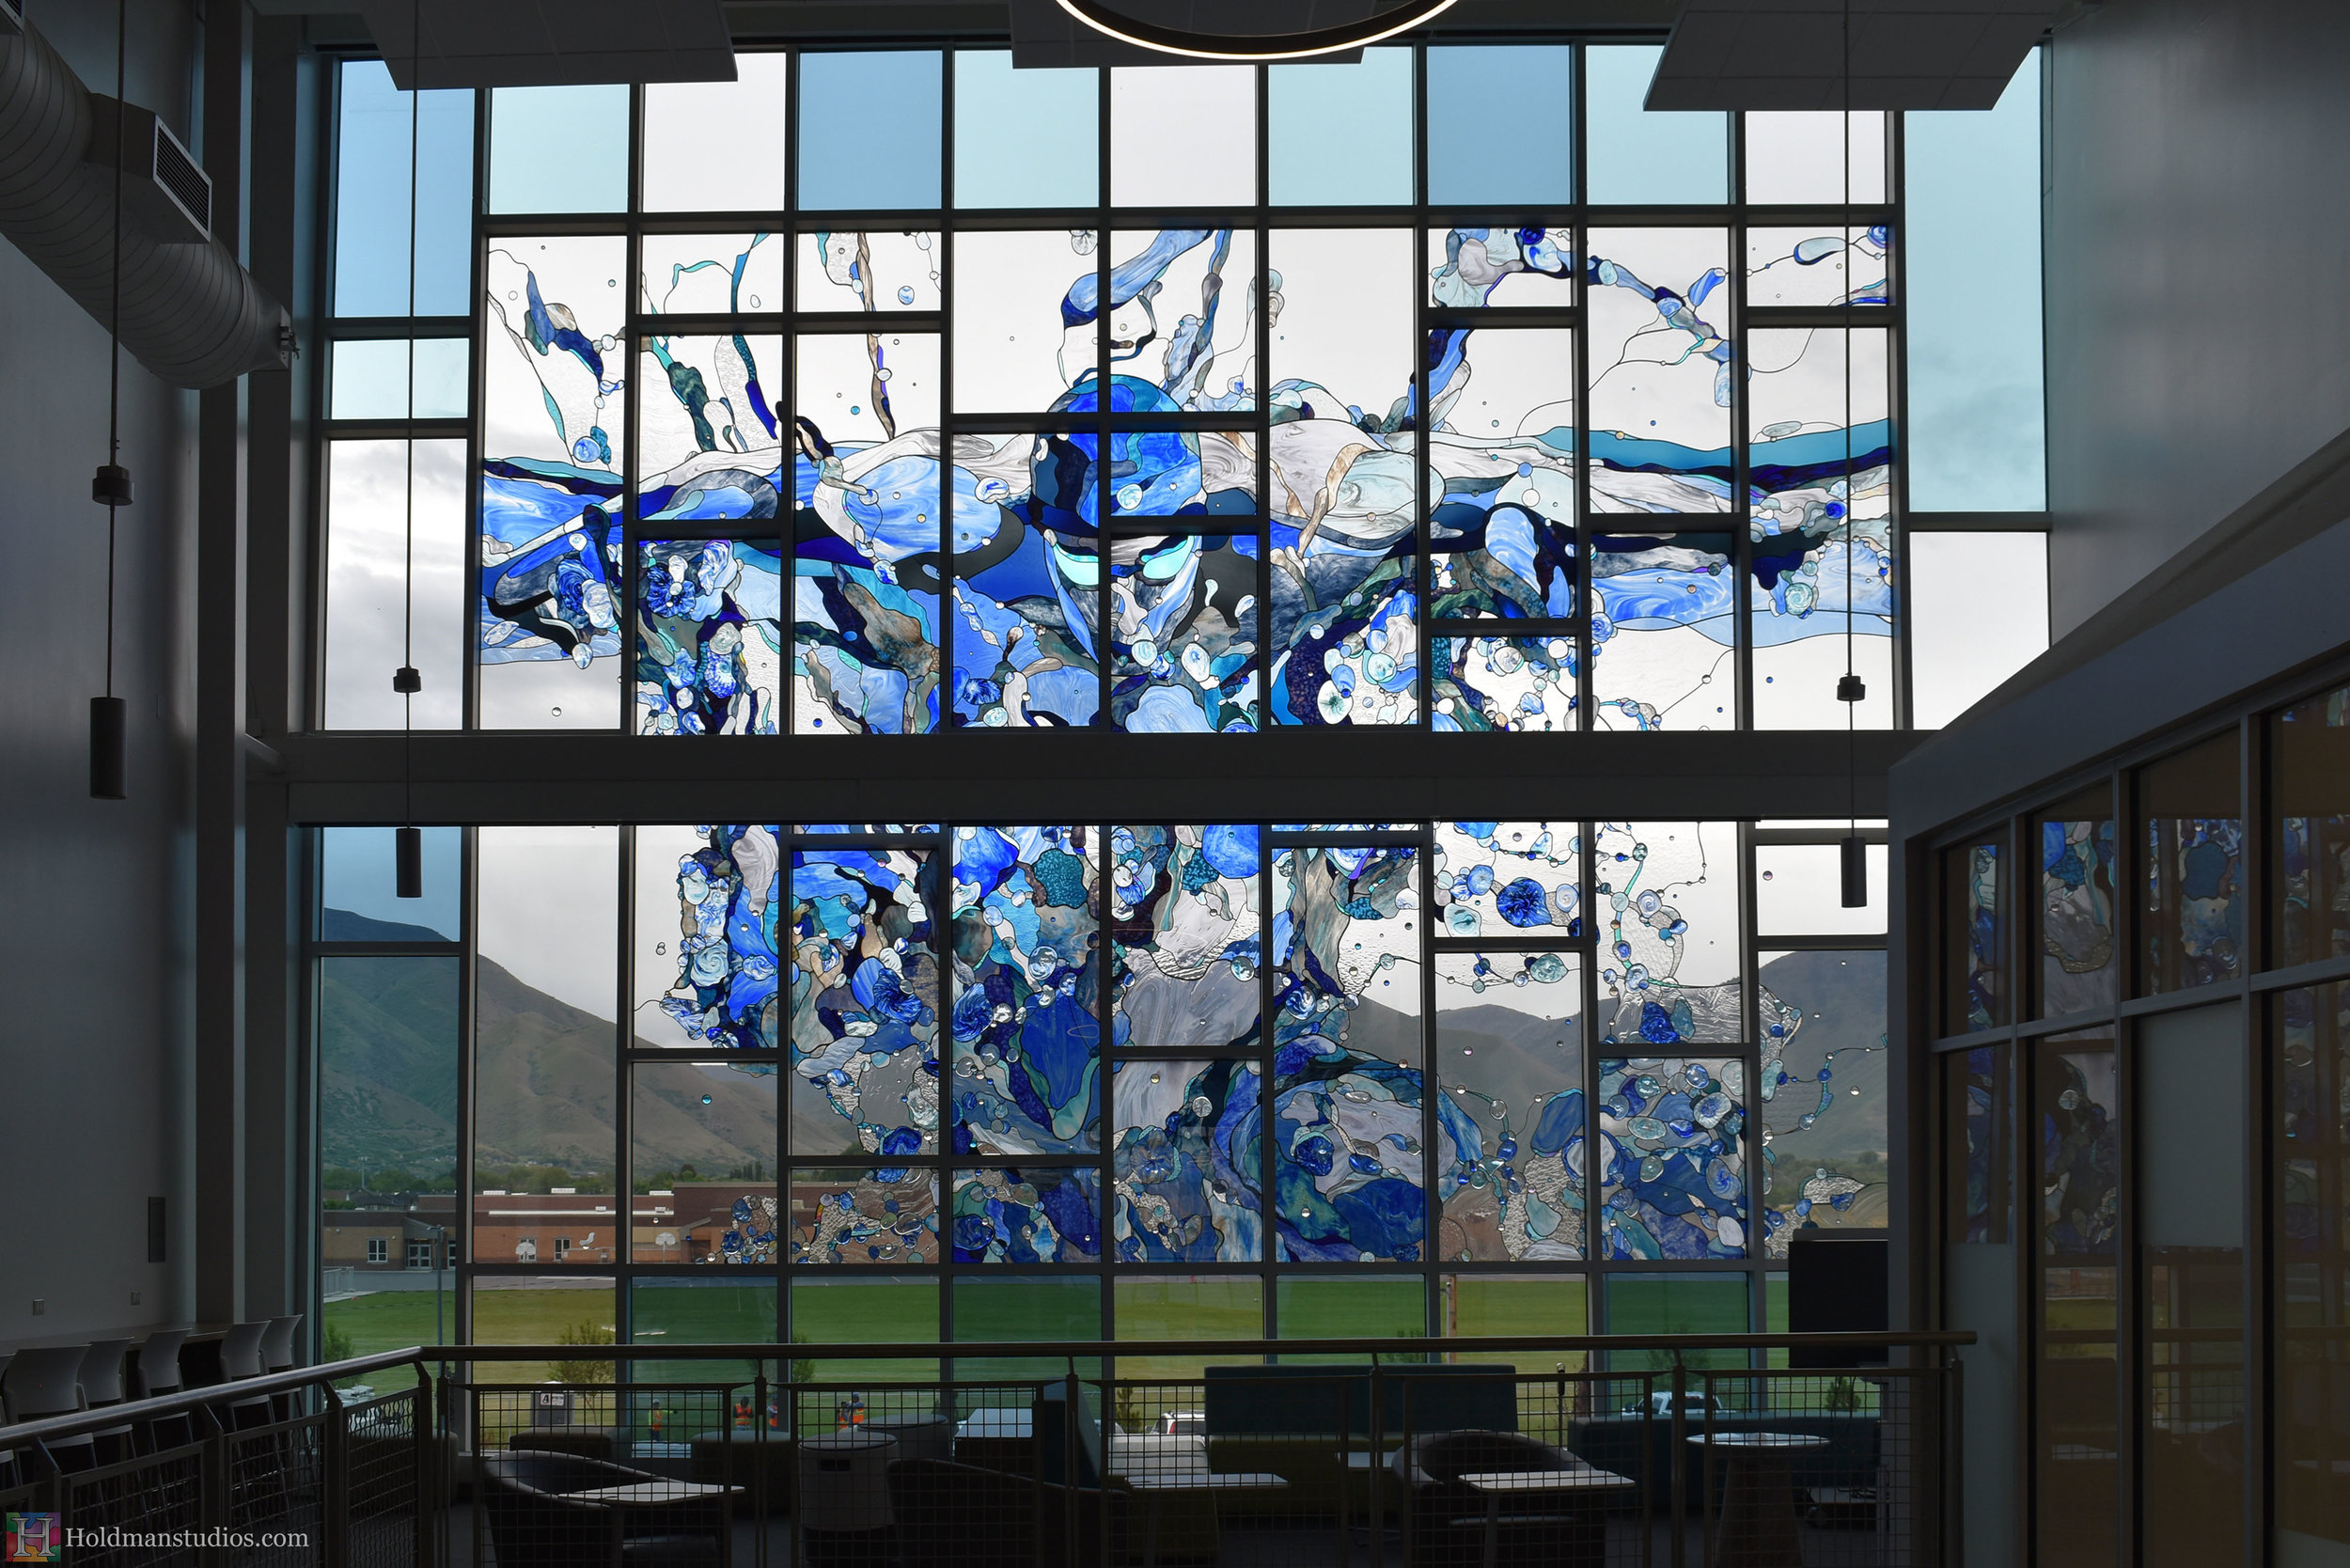 holdman-studios-hand-blown-stained-glass-window-springville-clyde-rec-center-slash-and-wave.jpg